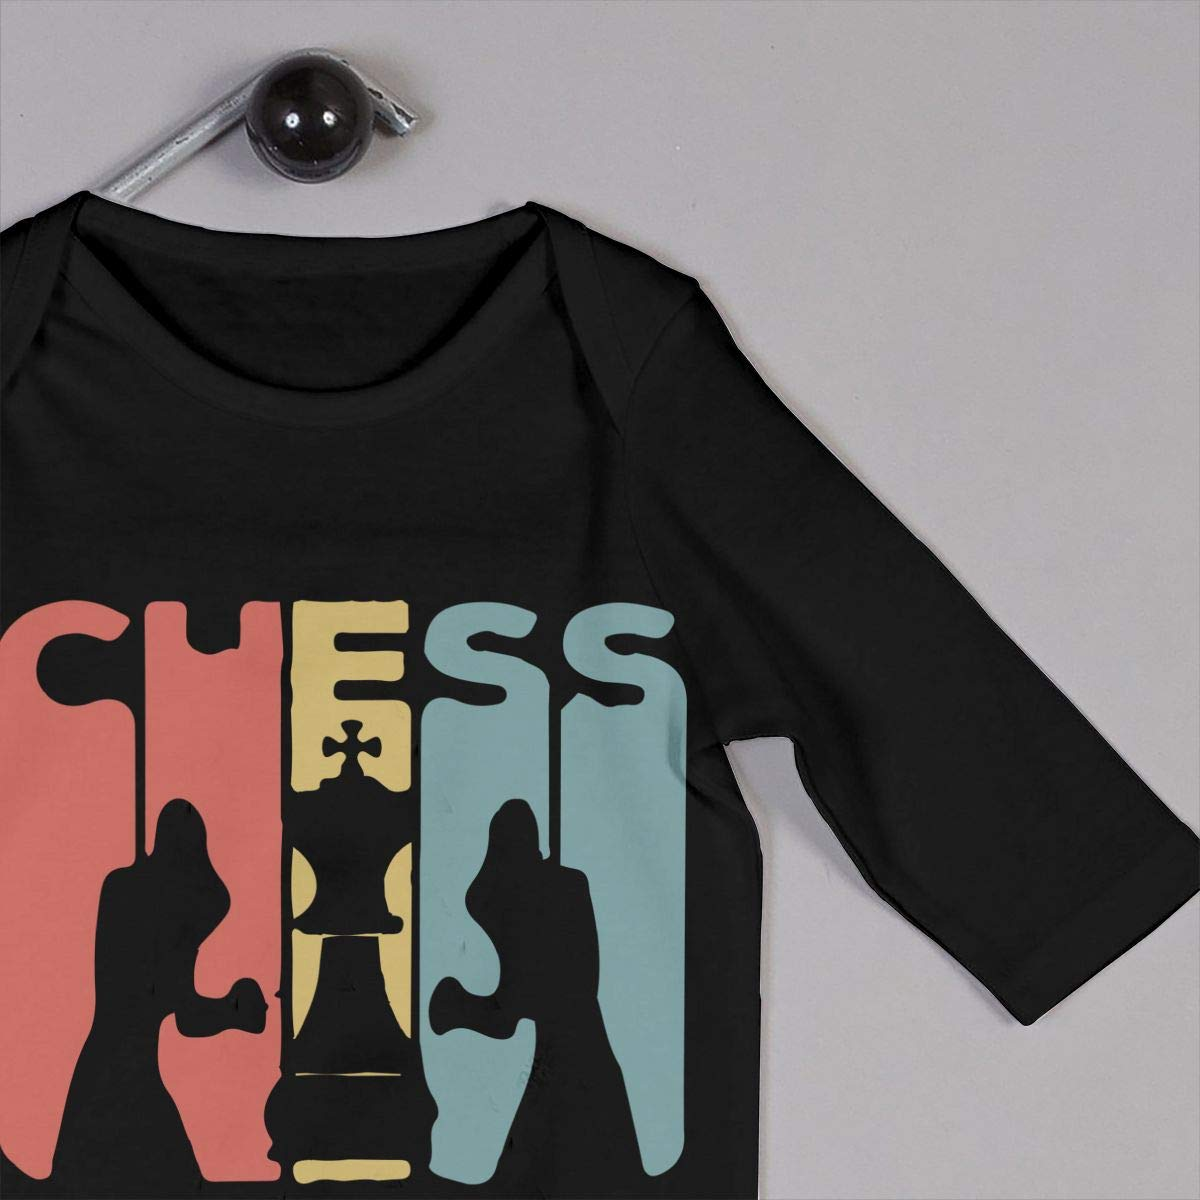 Chess Boxing Vintage Retro Toddler Baby Long Sleeve Romper Jumpsuit Baby Clothes